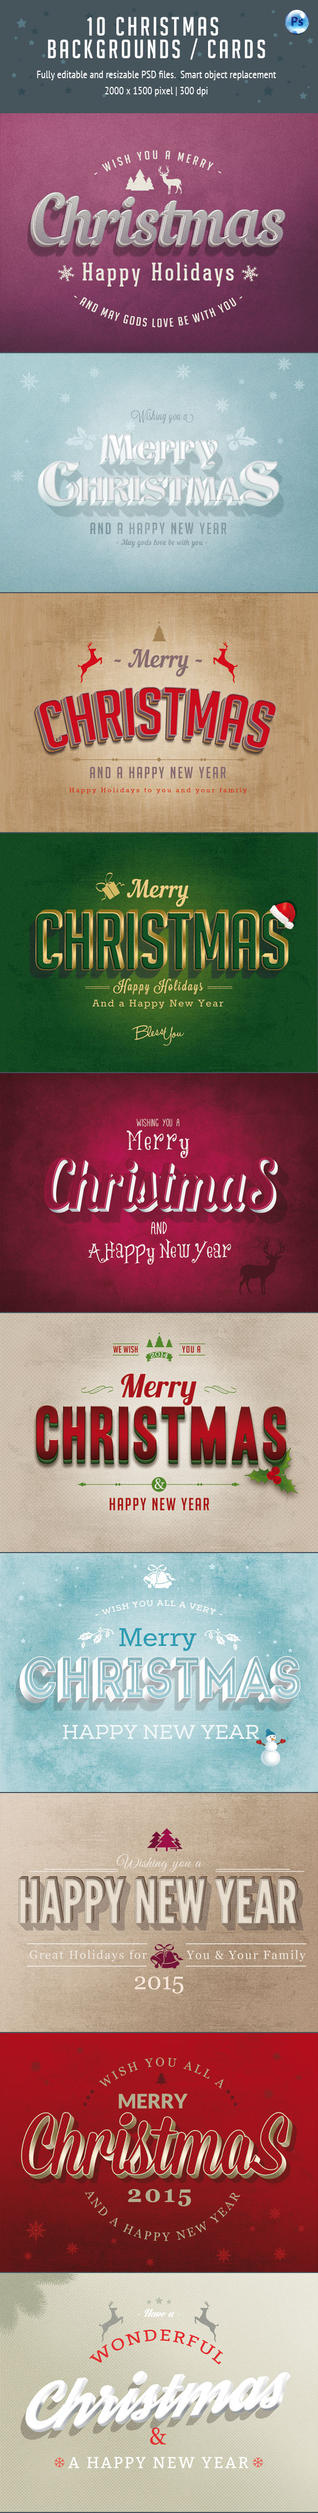 10 Christmas Backgrounds / Text Styles / Cards by imagearea